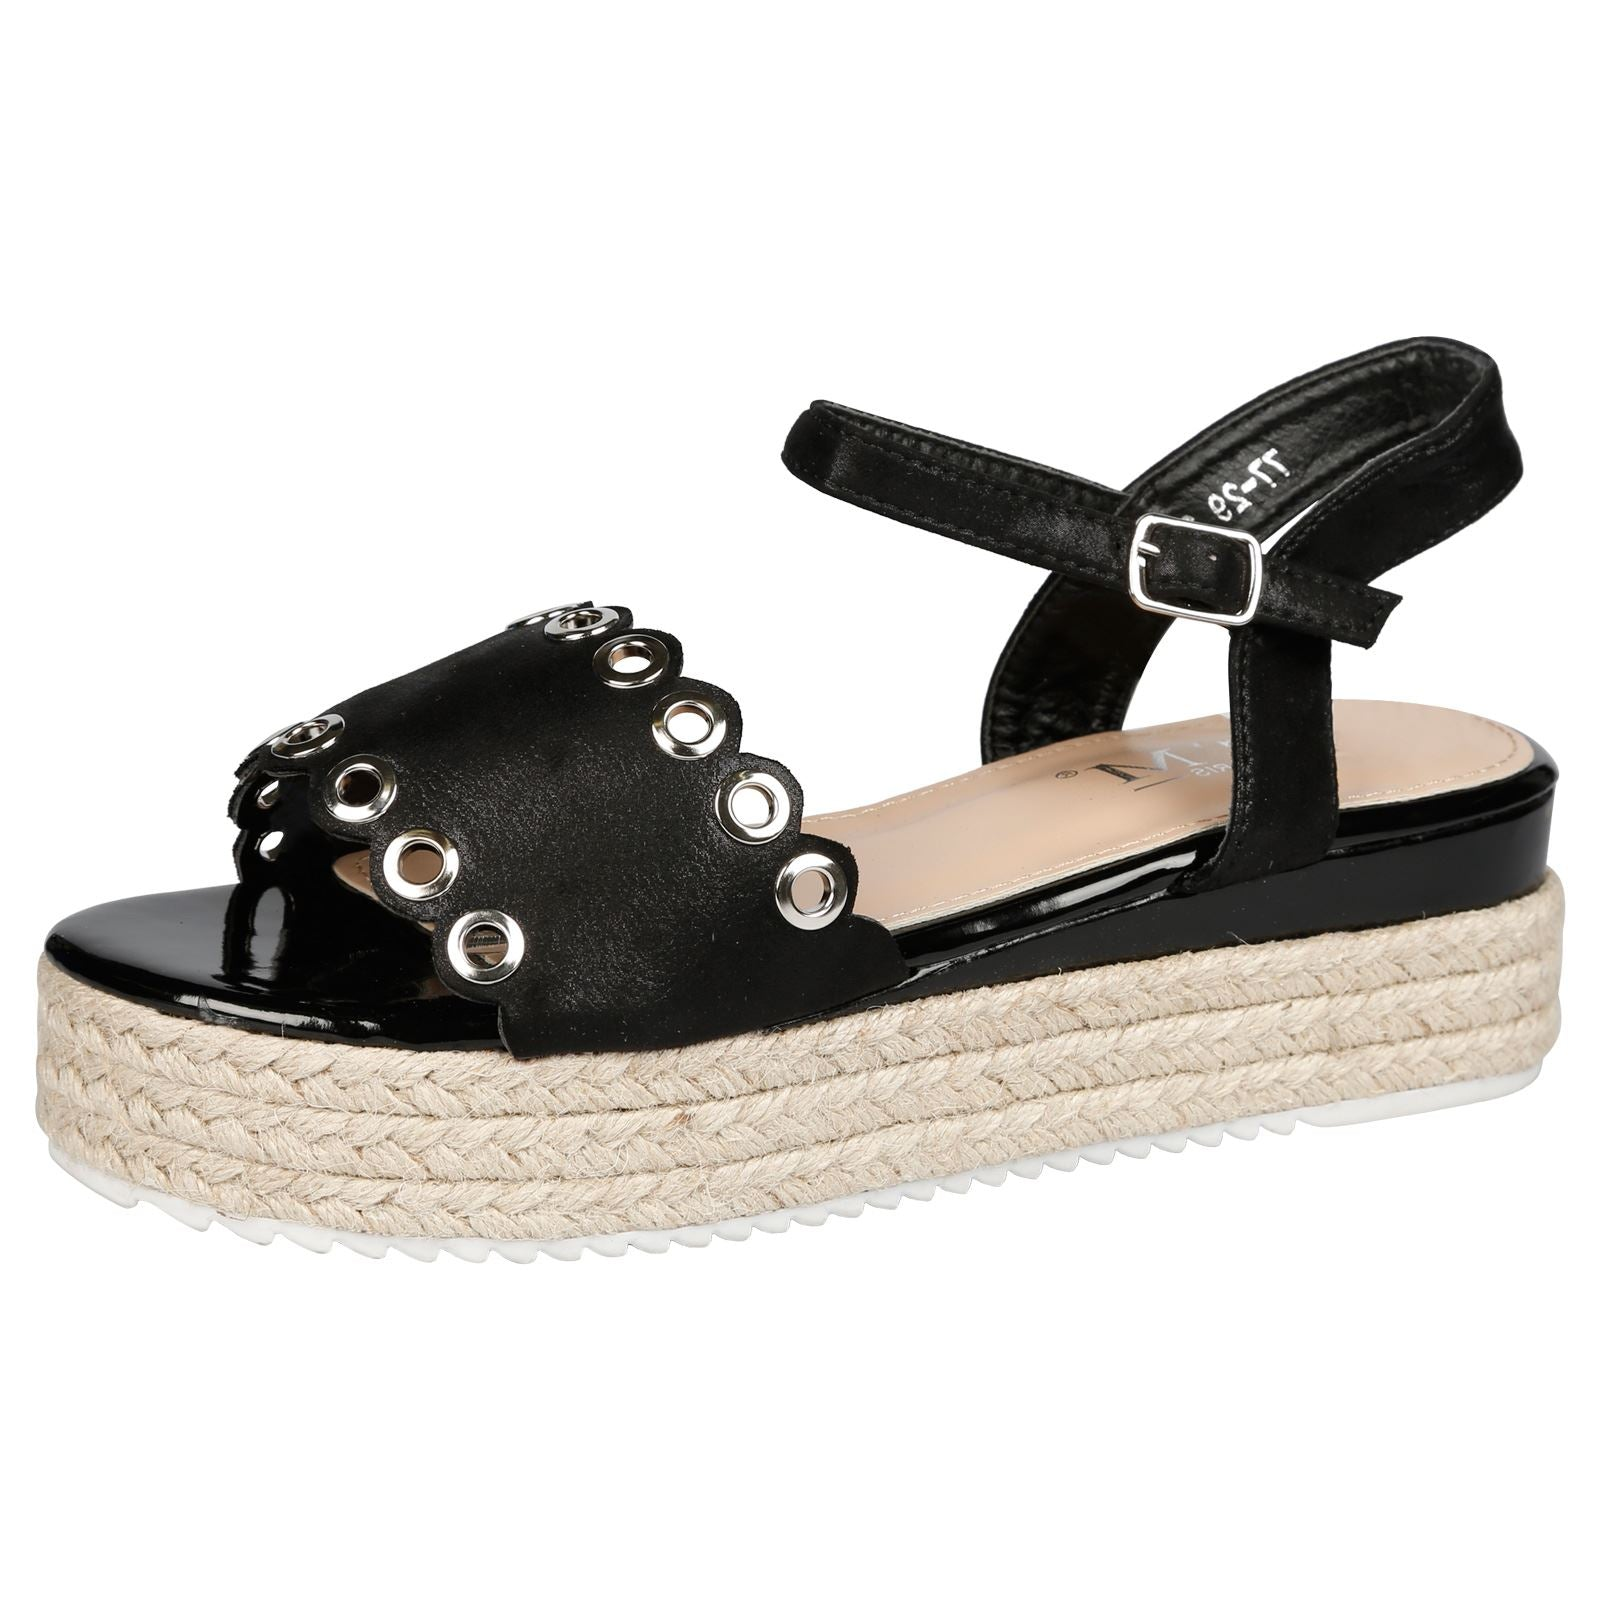 Blessing Eyelet Detail Flatform Espadrille Sandals in Black Shimmer